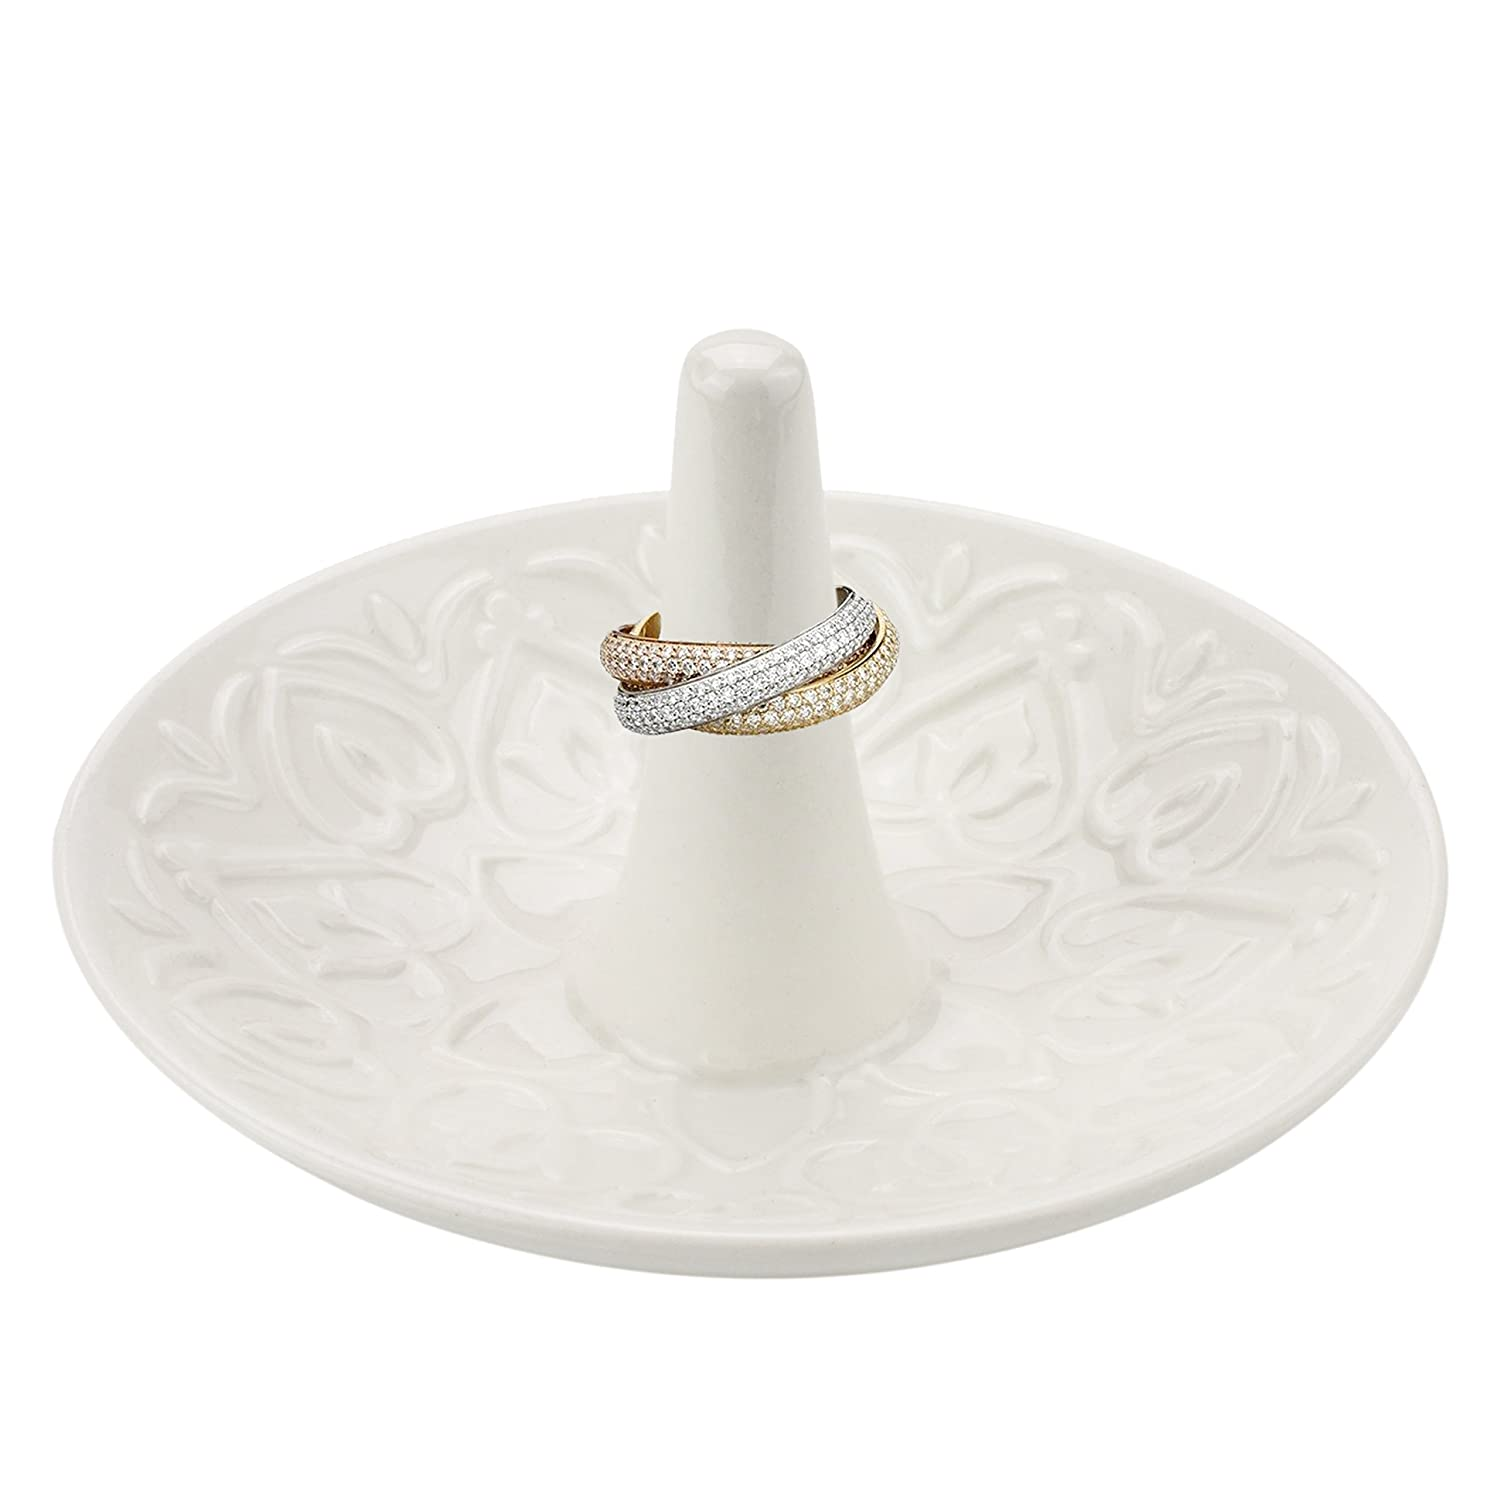 MyGift Decorative Raised Heart Design White Ceramic Ring Dish Dresser Top Jewelry Holder Trinket Tray